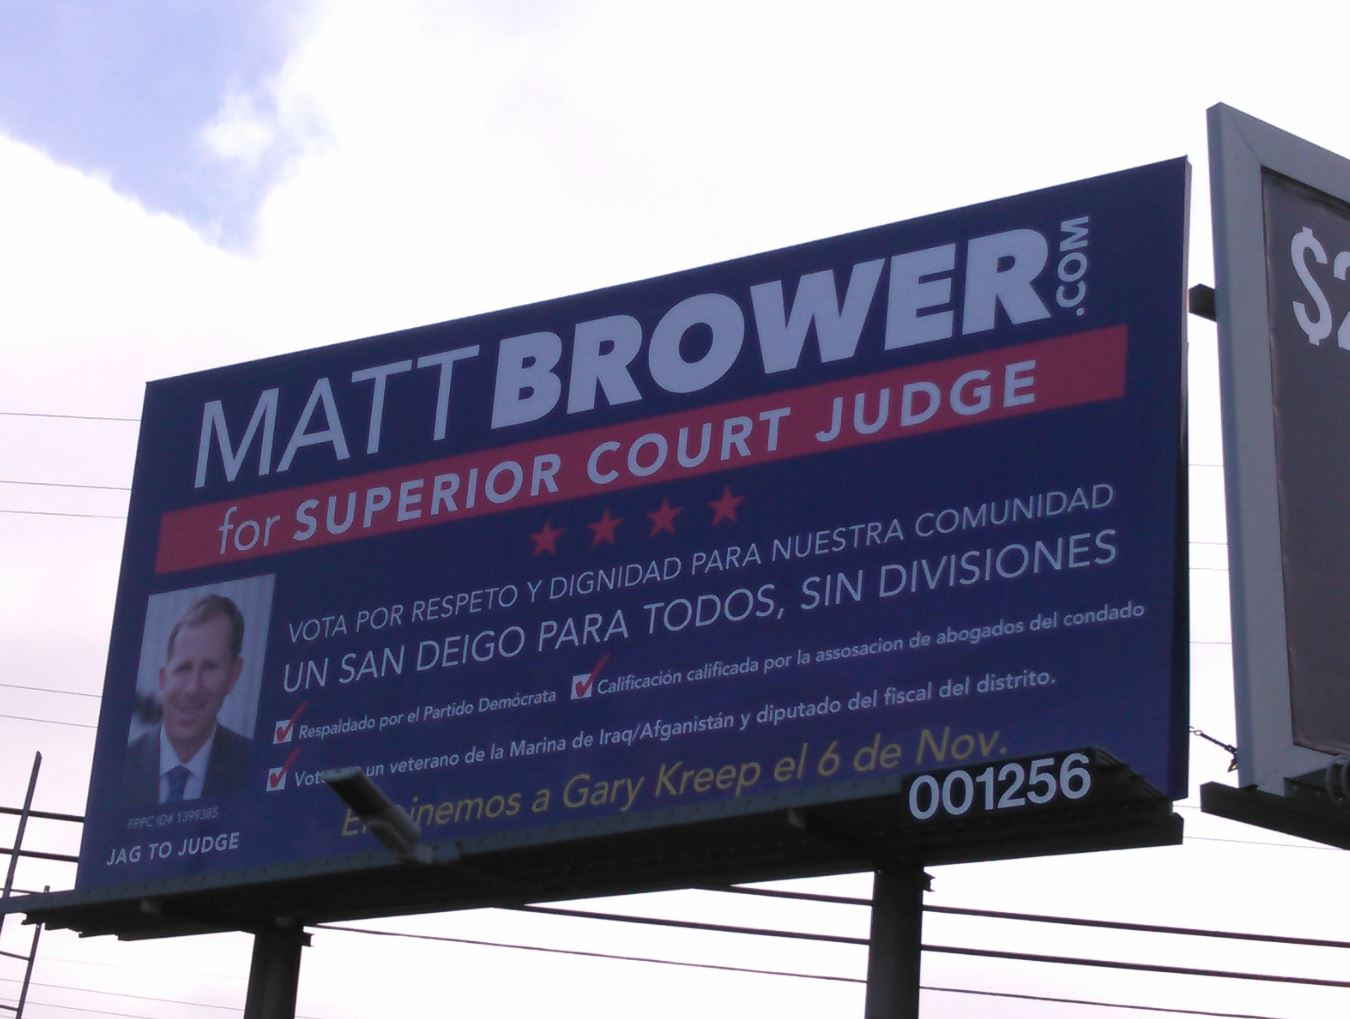 Brower 4 Judge Billboard in National City Oct 18